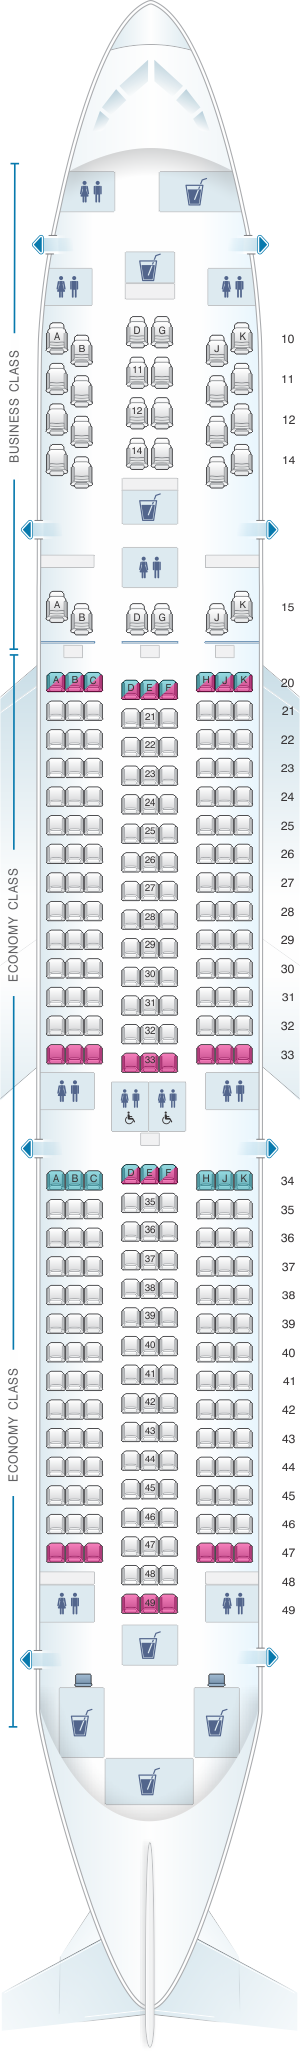 Seat map for Oman Air Boeing B787 9 V1